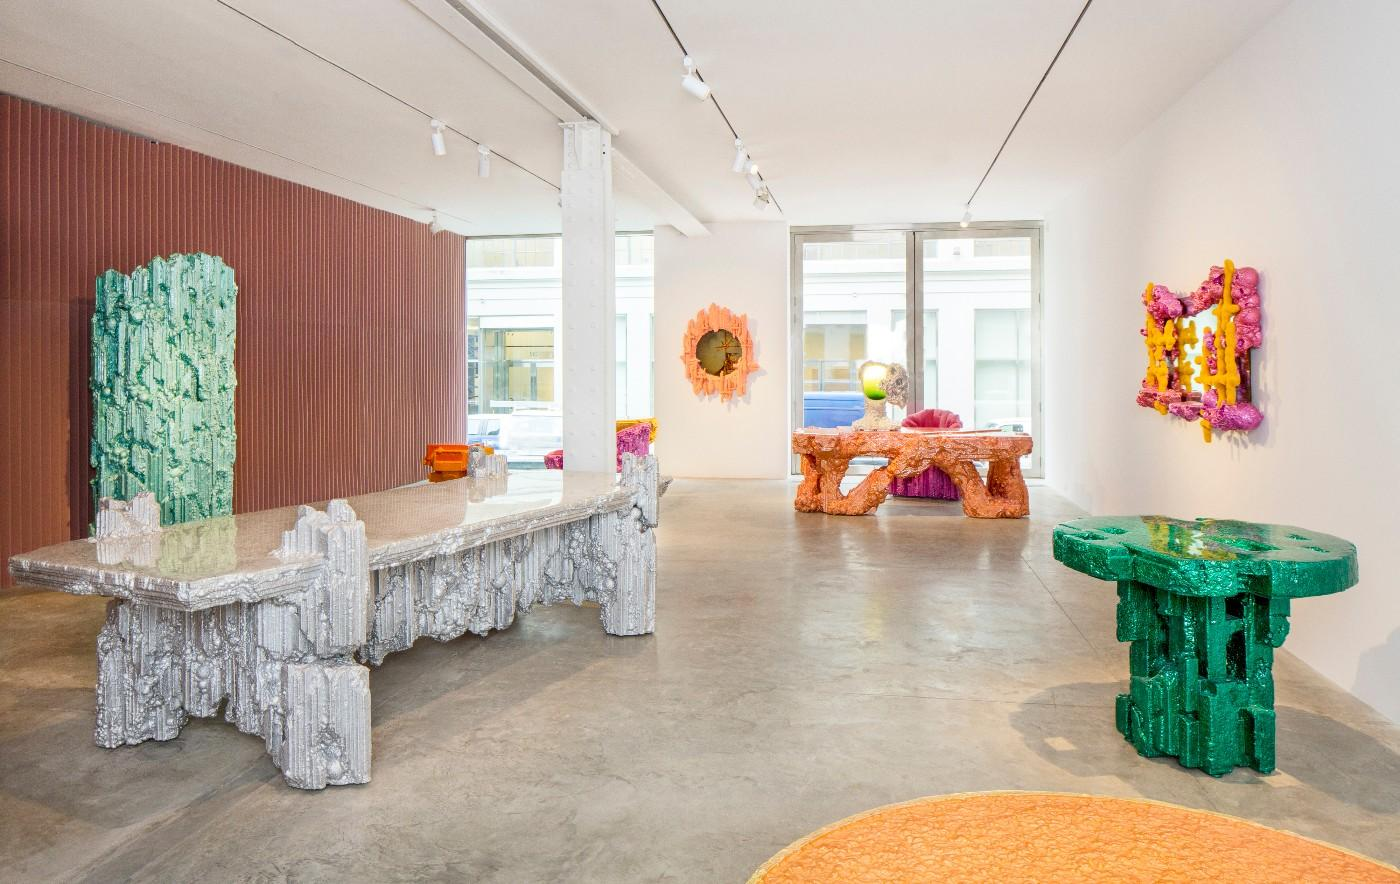 Installation view of Chris Schanck's 'Unhomely' at Friedman Benda